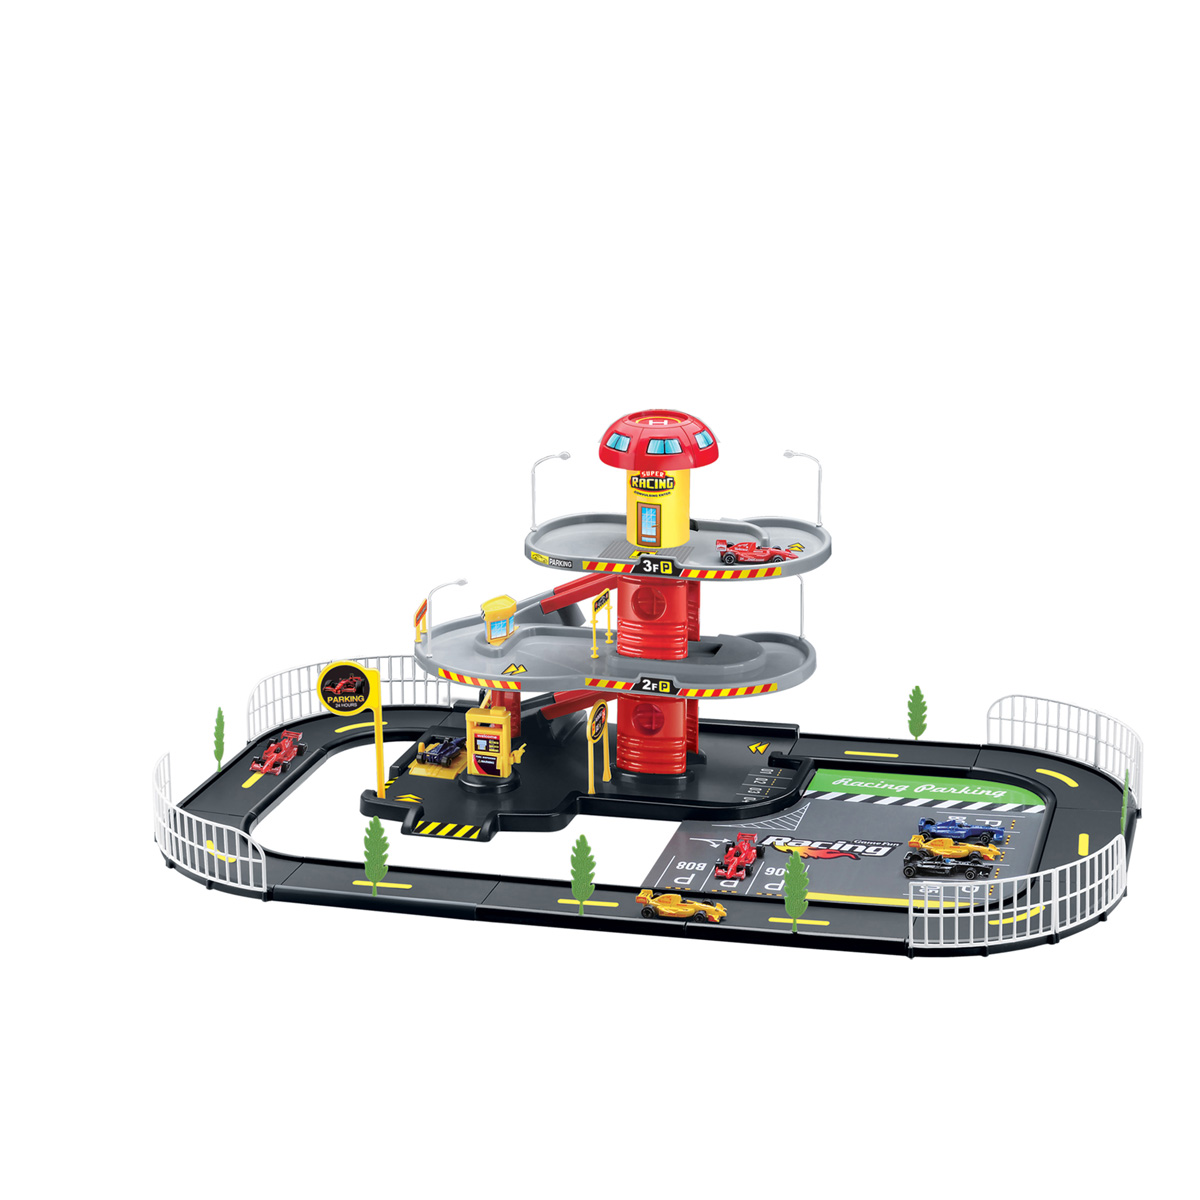 race track playset with 2 level parking garage and 2 racecars black Parking Garage Interior Design race two or more cars along the racetrack then drive up and down the r s through the 2 level parking garage includes 2 racecars traffic signs trees